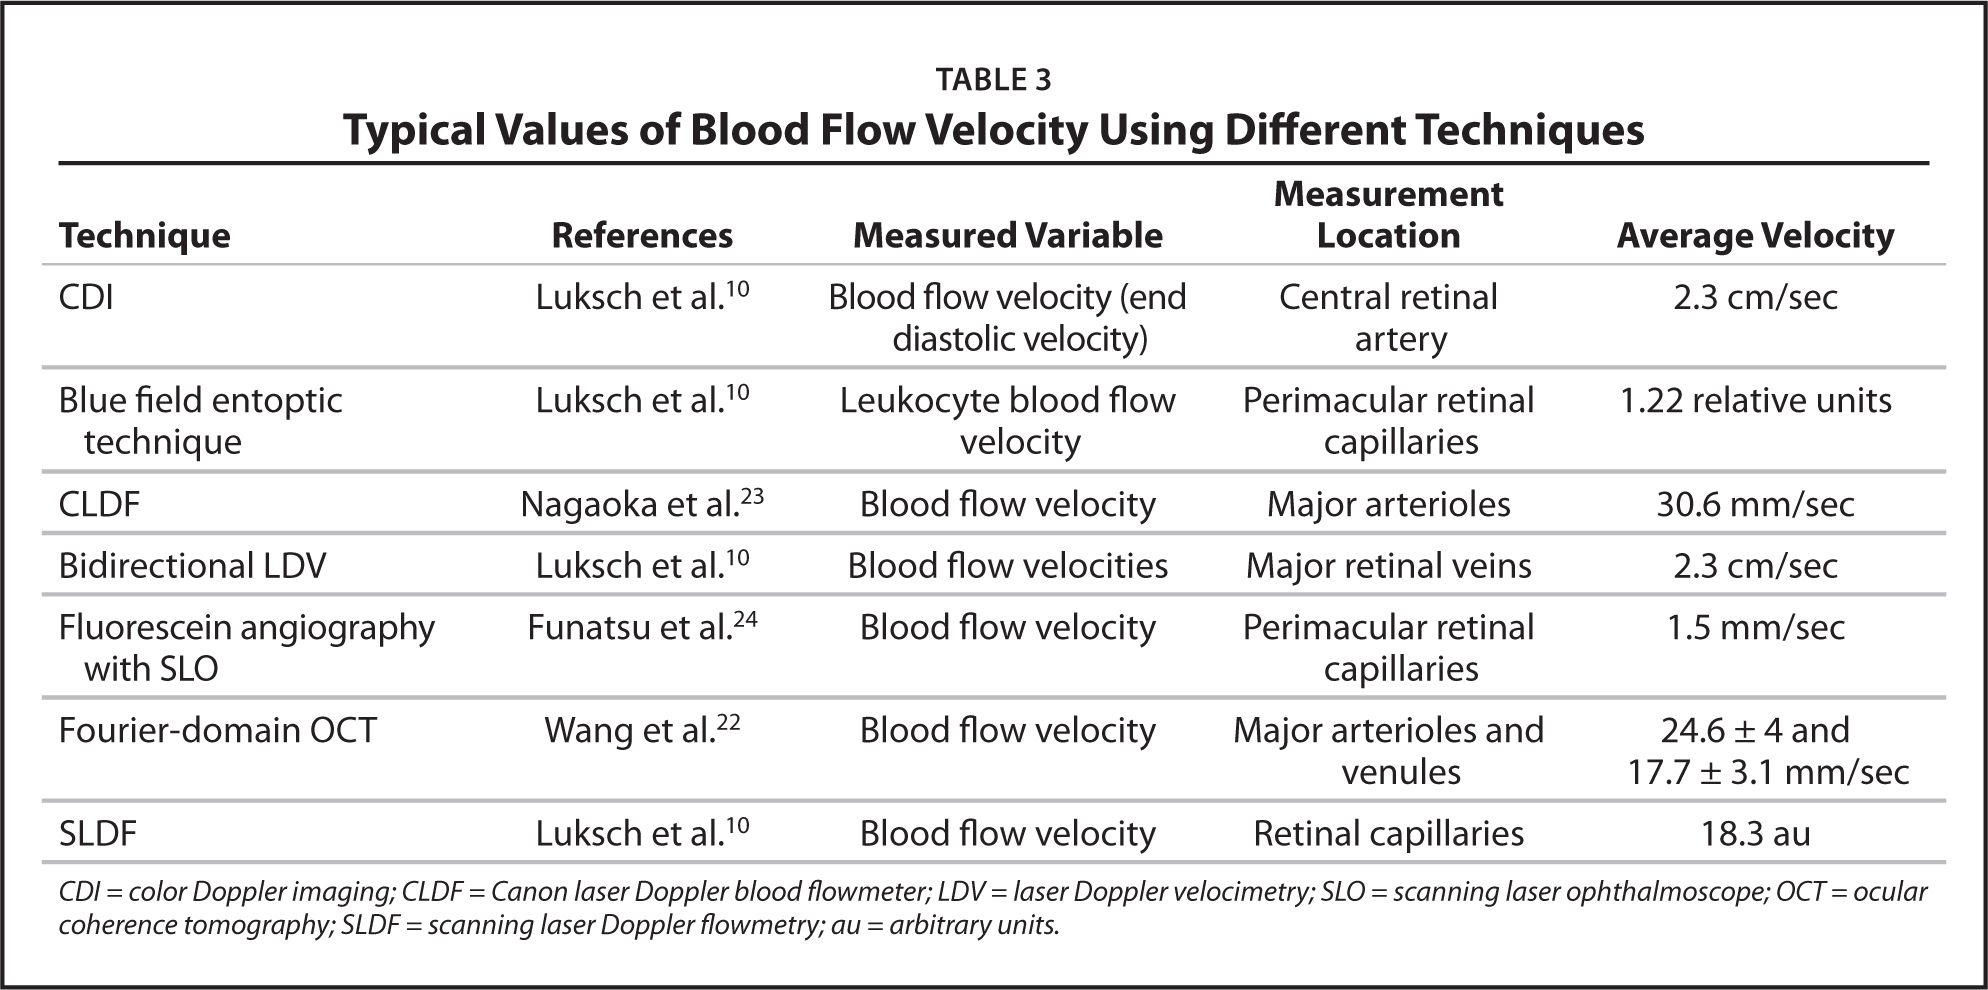 Typical Values of Blood Flow Velocity Using Different Techniques